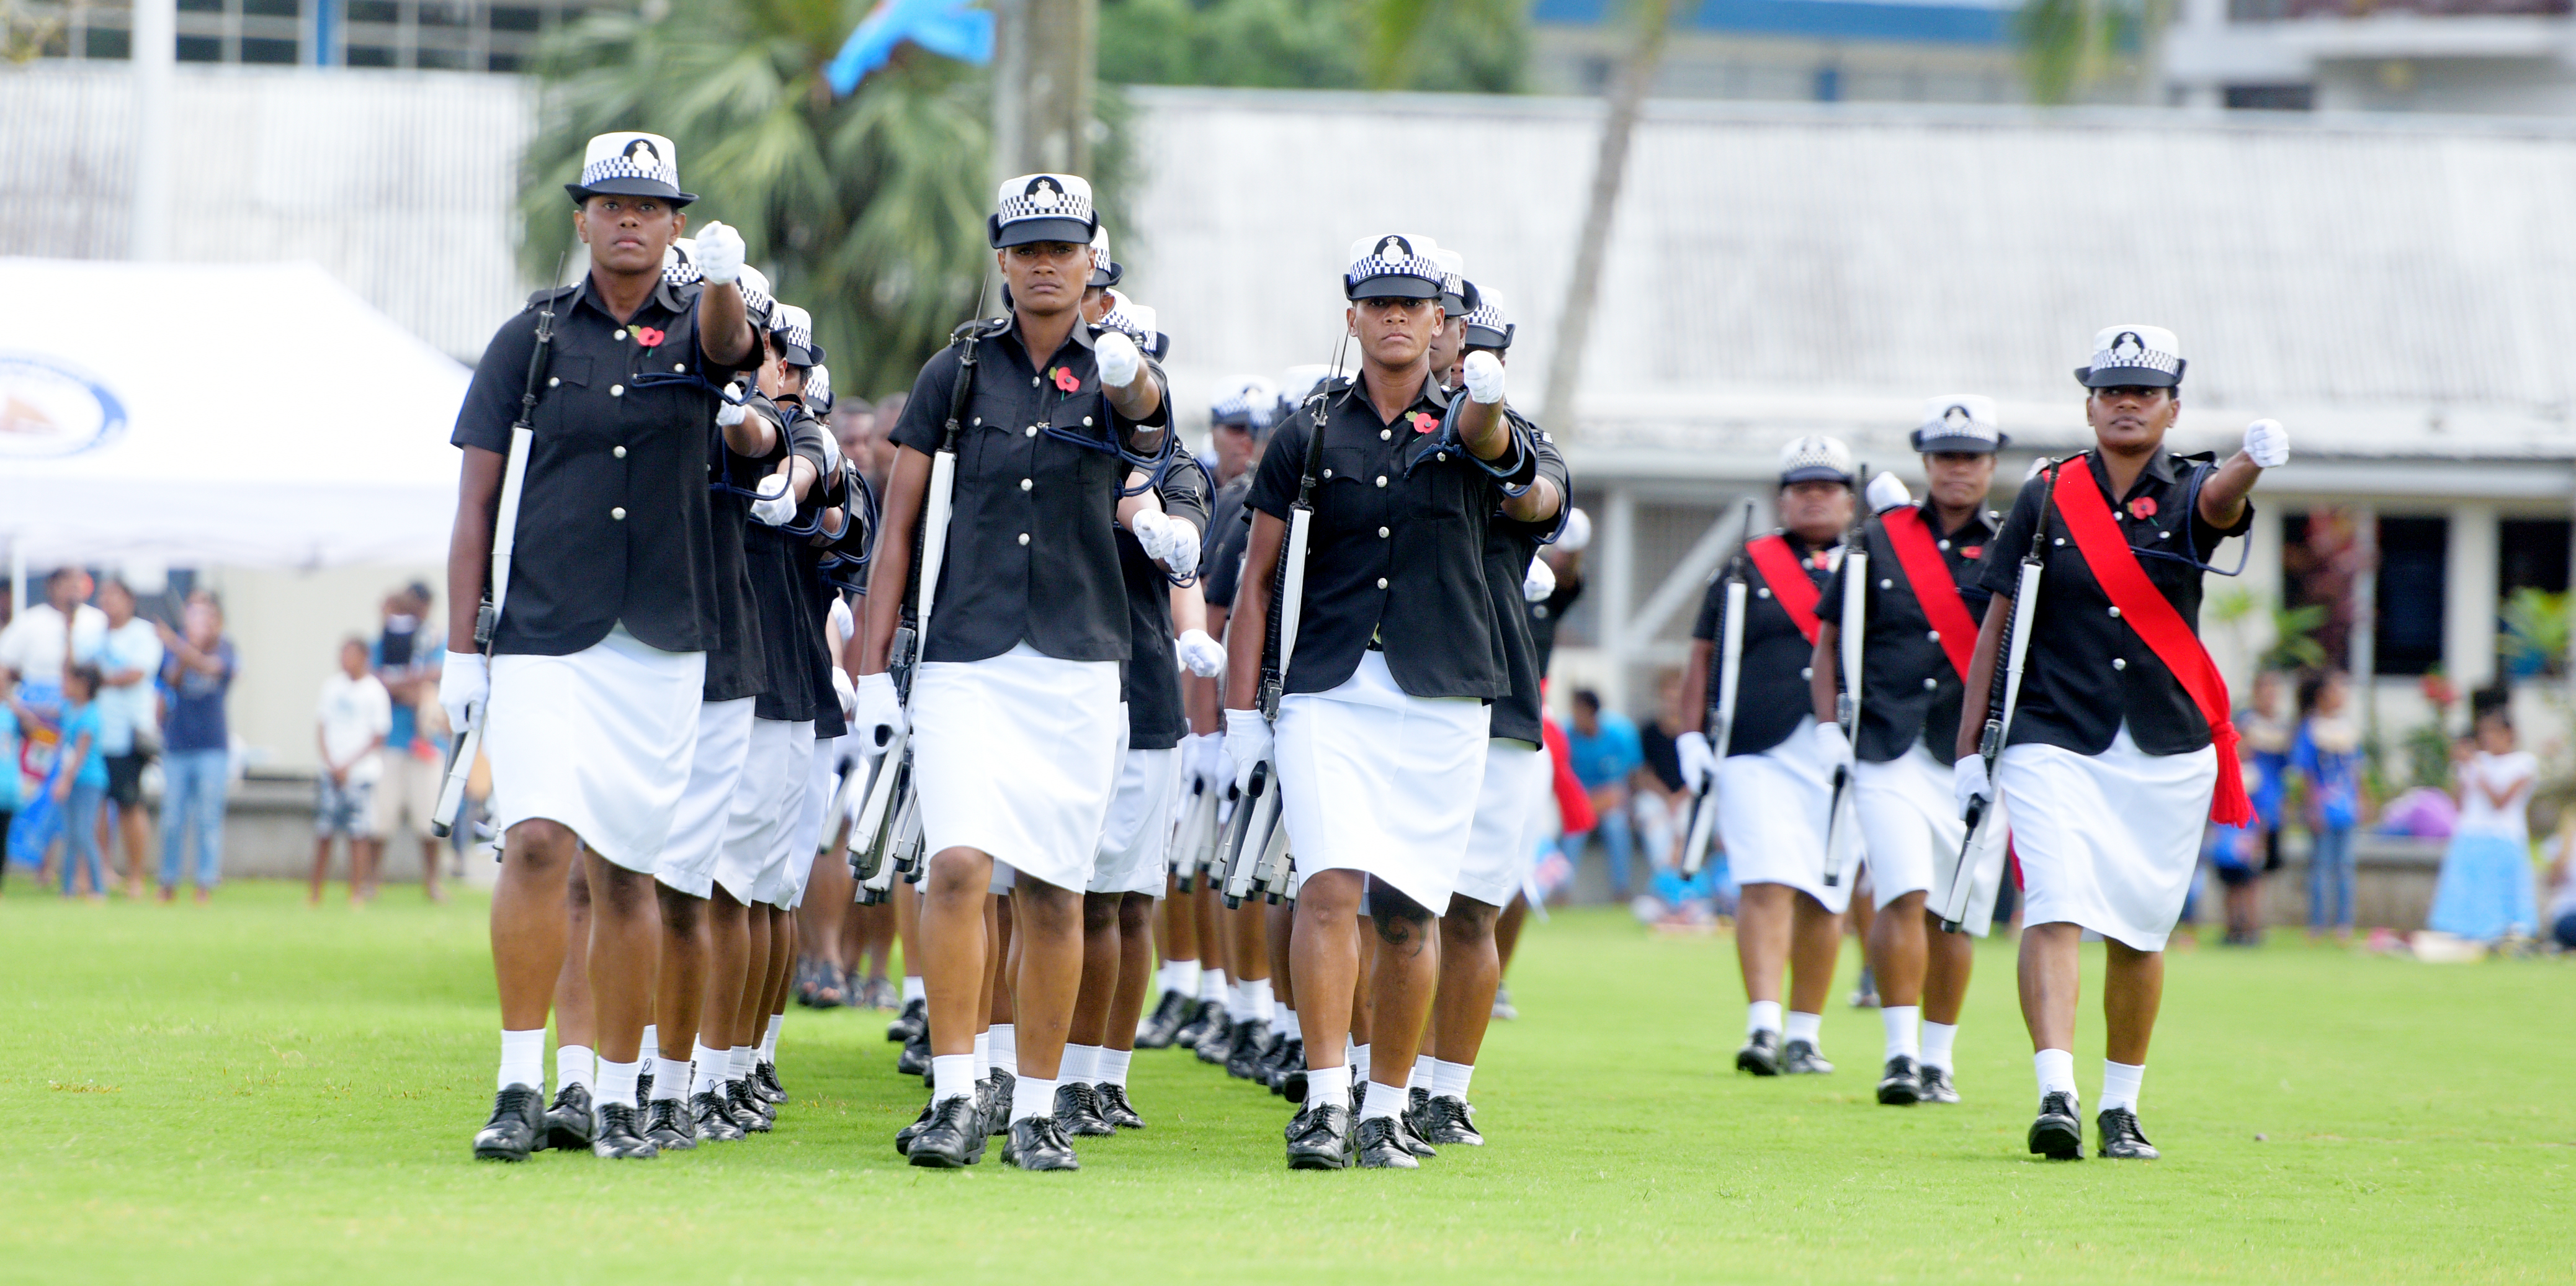 Members of Fiji Police Force during the 50th anniversary of Independence commemorative medal during Fiji Day Parade at Albert Park on October 7, 2020. Photo: Ronald Kumar.